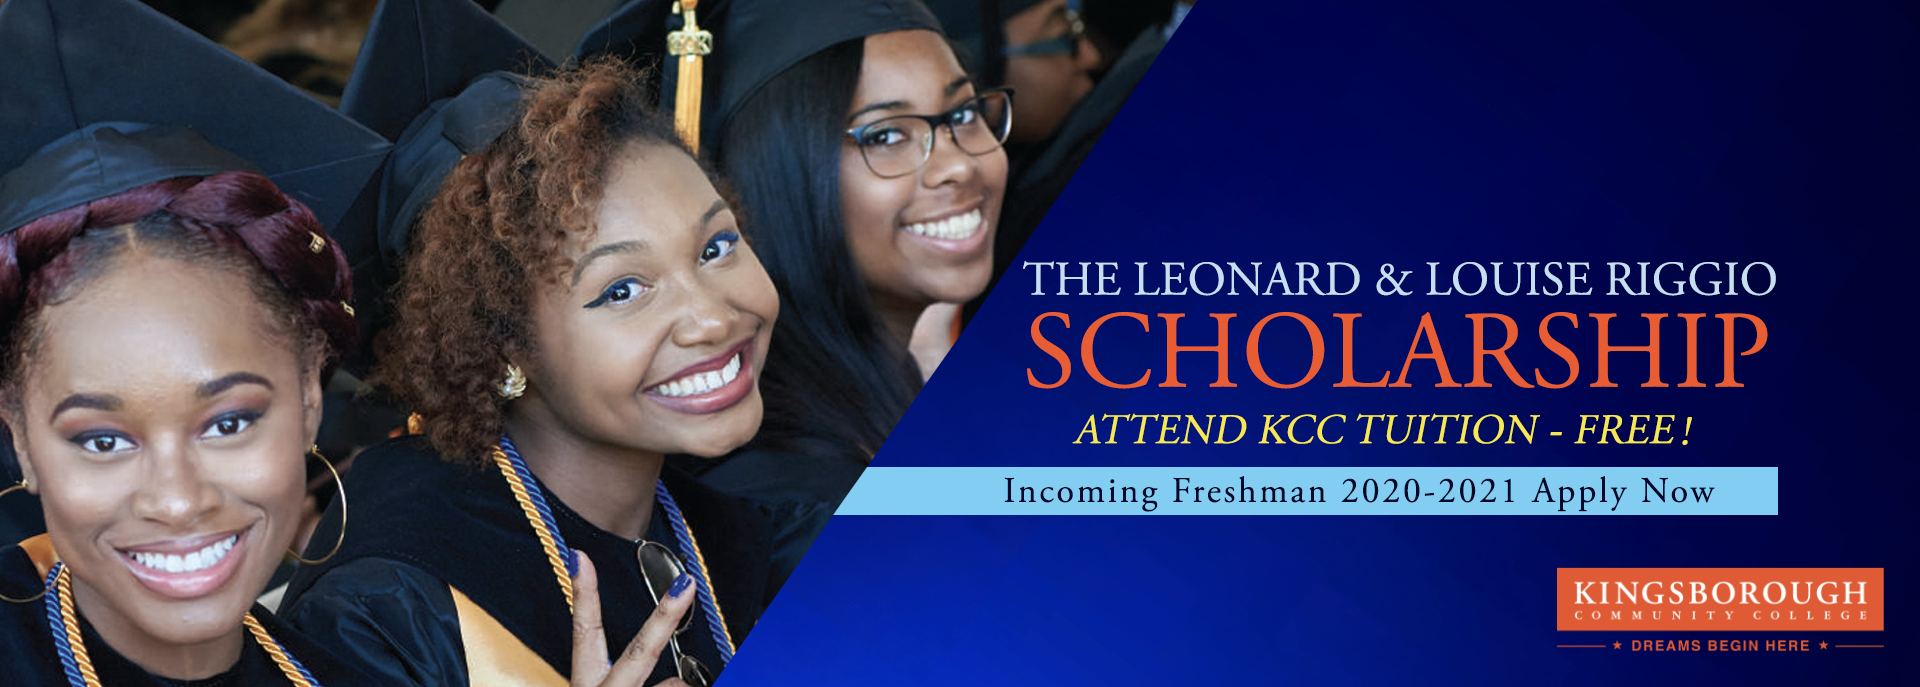 The Leonard and Louise Riggio Scholarship Application